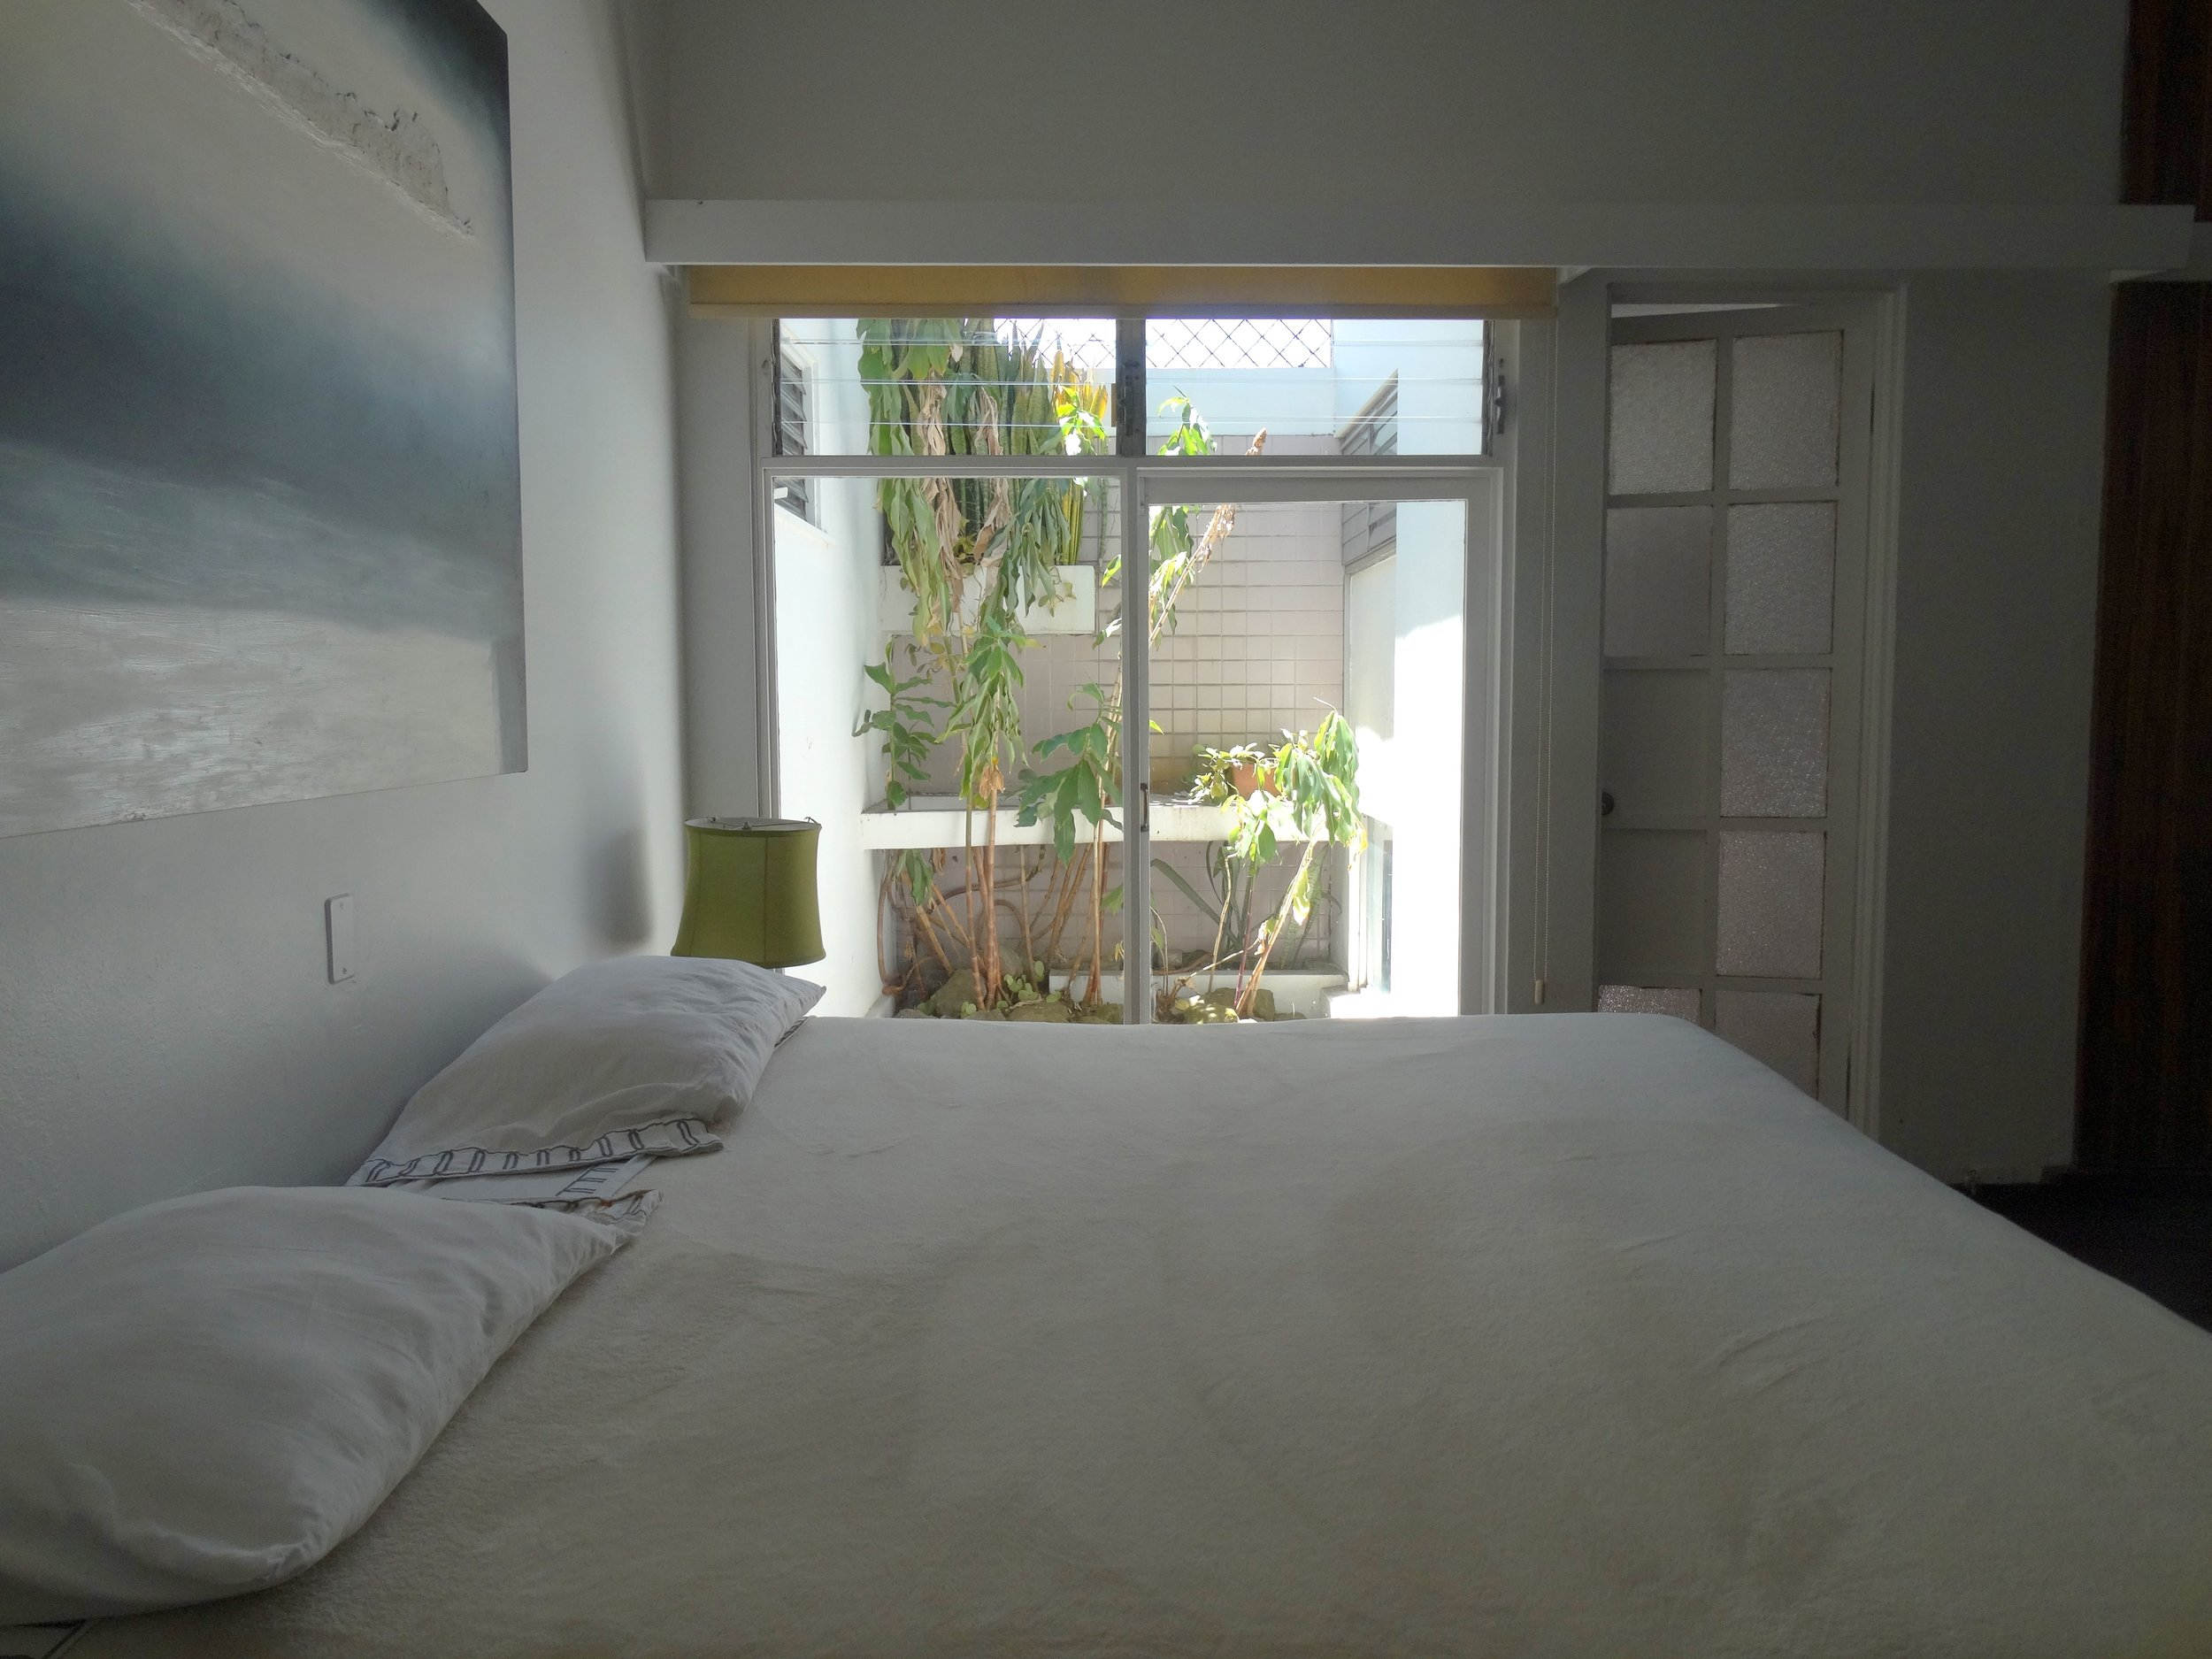 Room with a king size bed and window